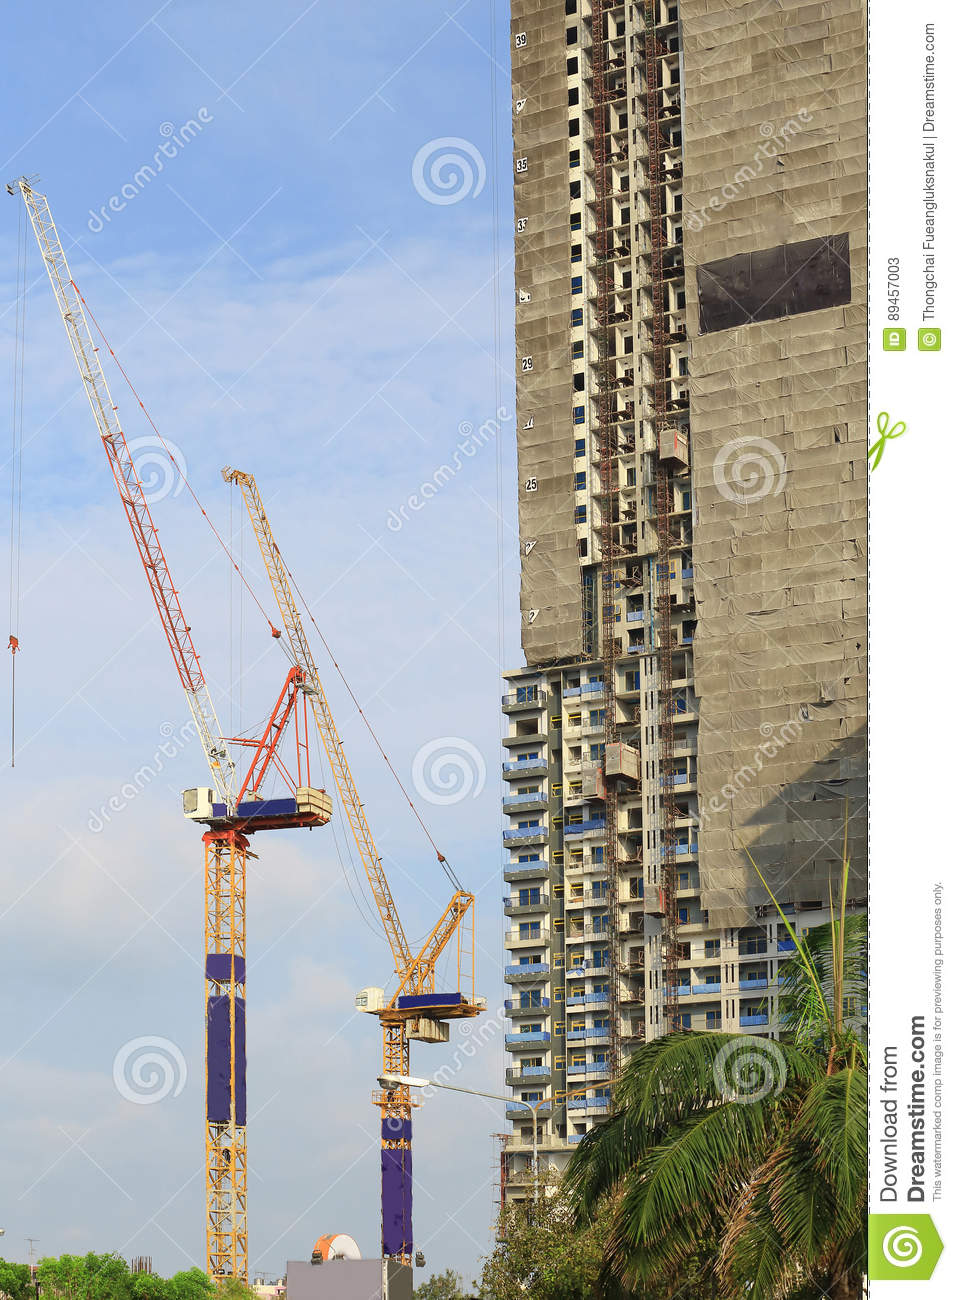 Cranes in construction site with blue sky and cloud.